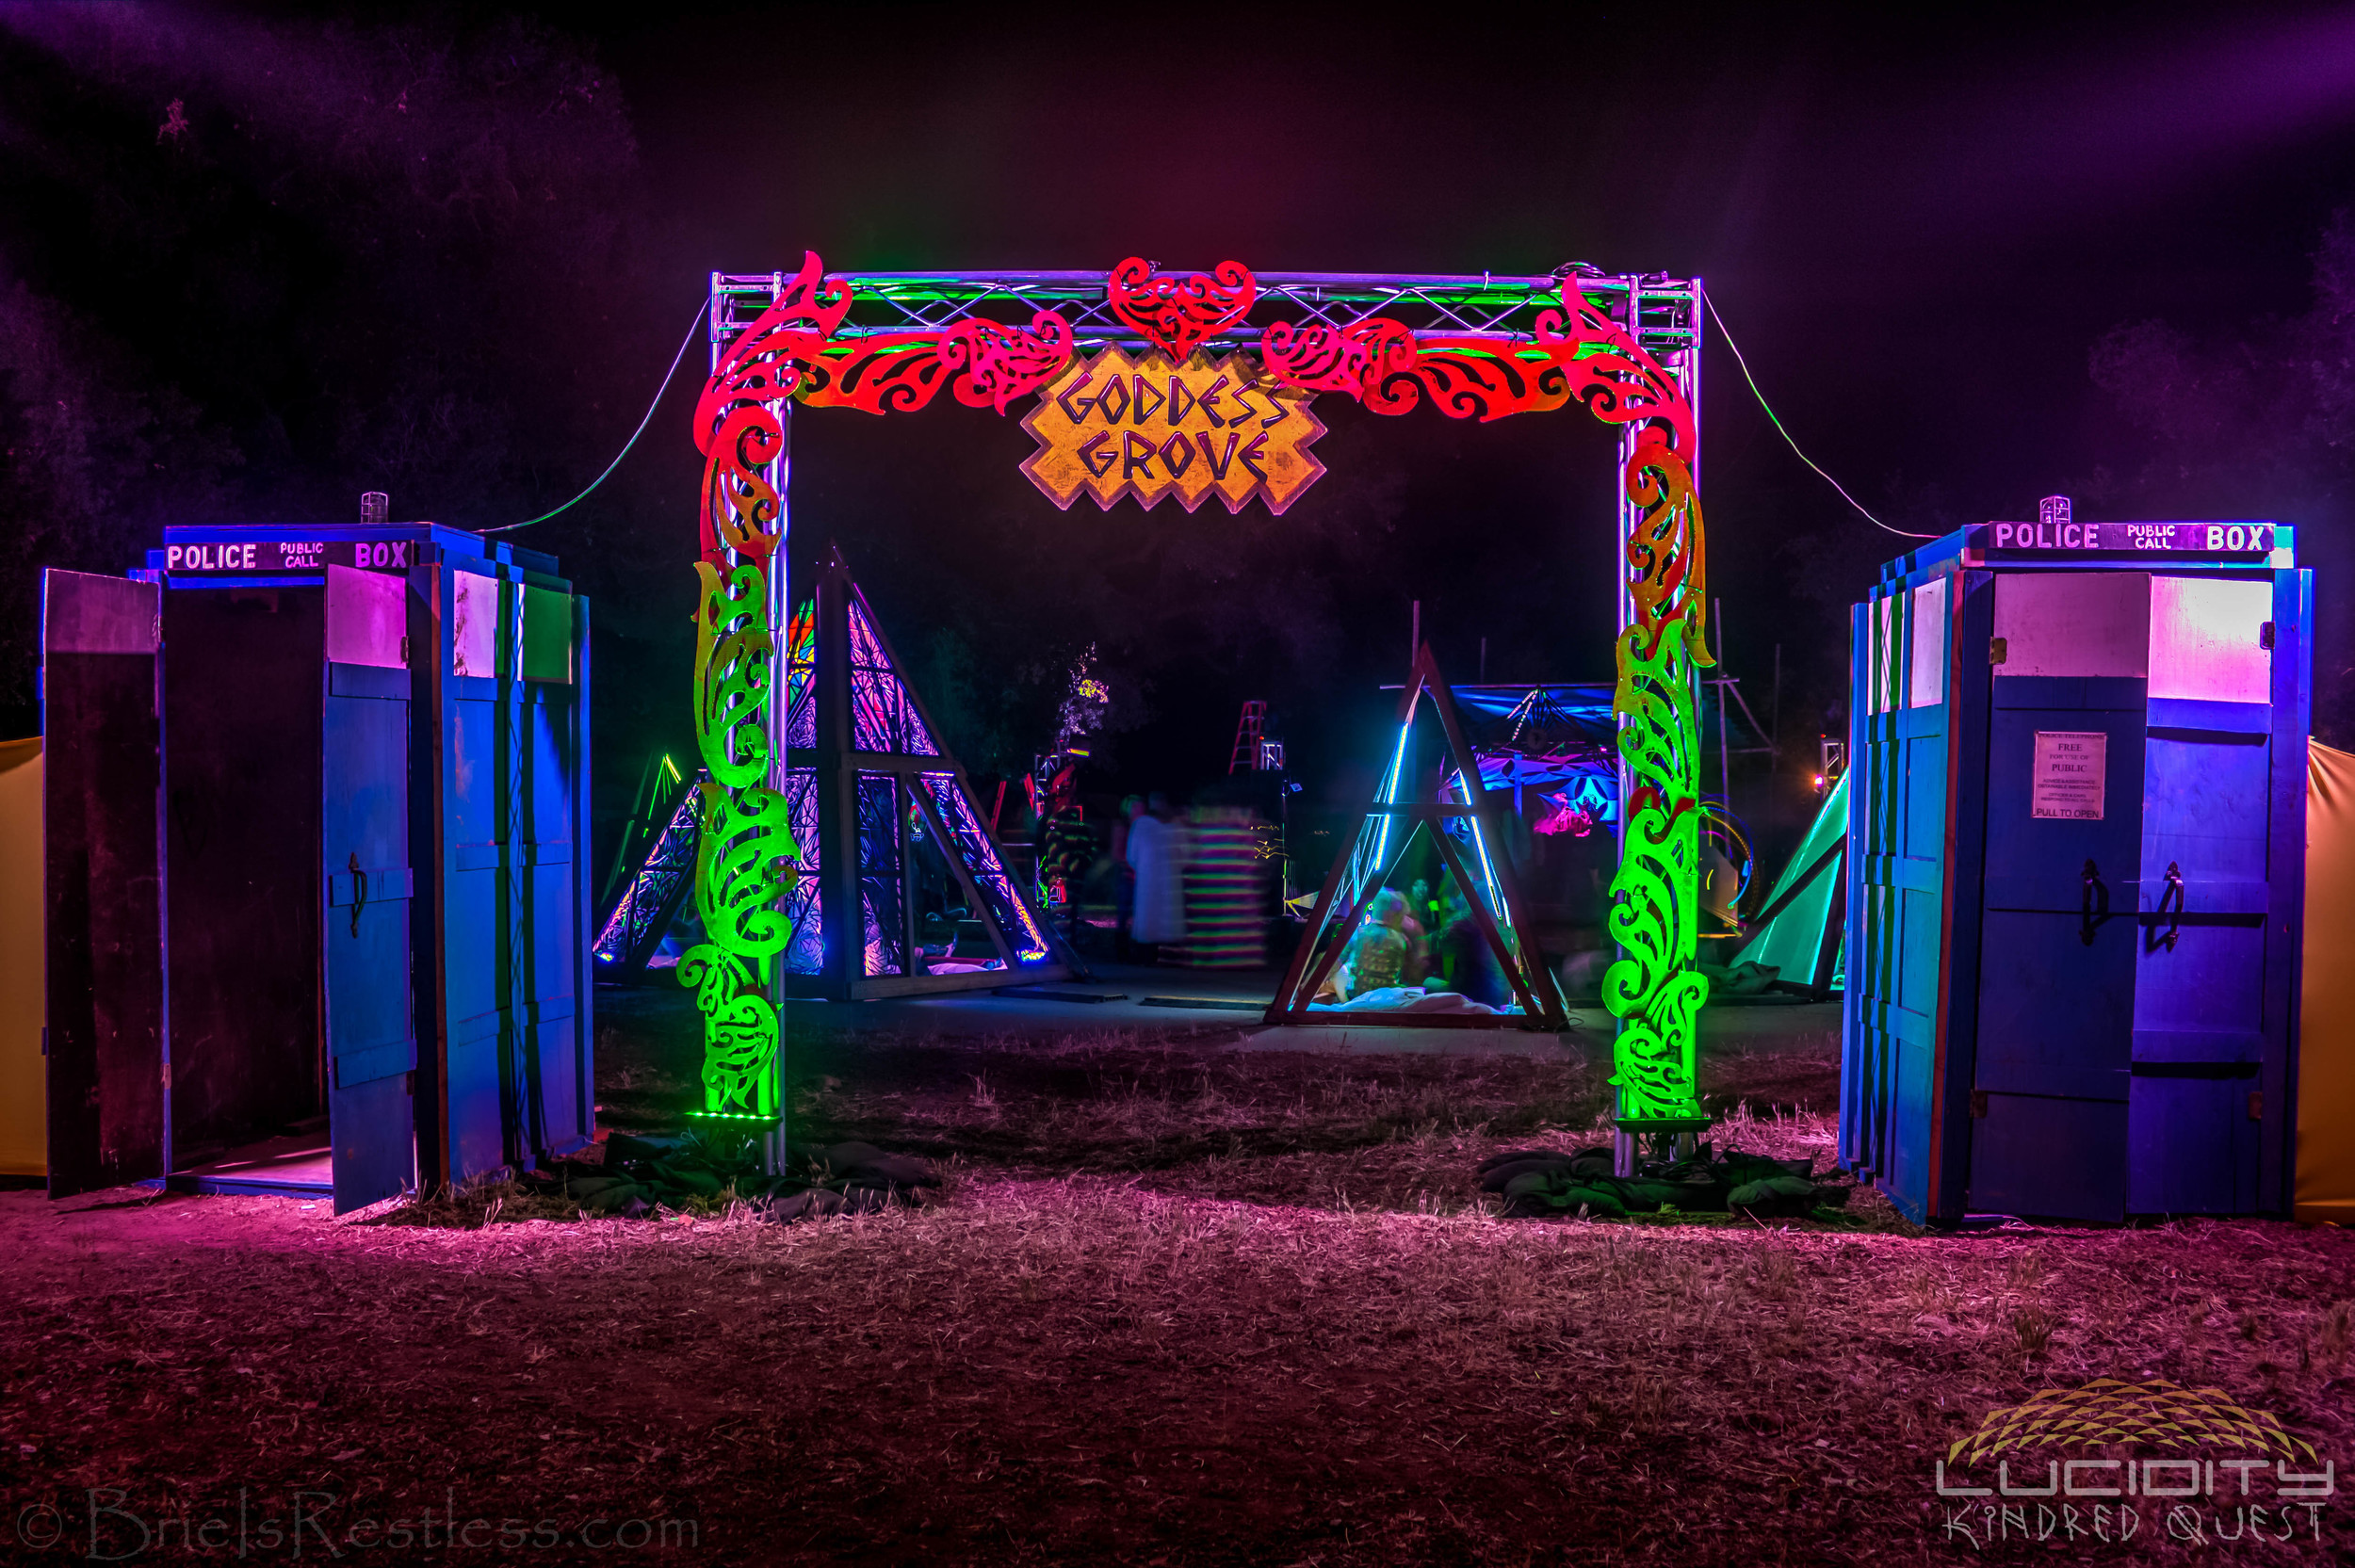 Goddess Grove Entrance - Luciditiy - Kindred Quest - Build - April 2015 (1 of 1) (1 of 1).jpg